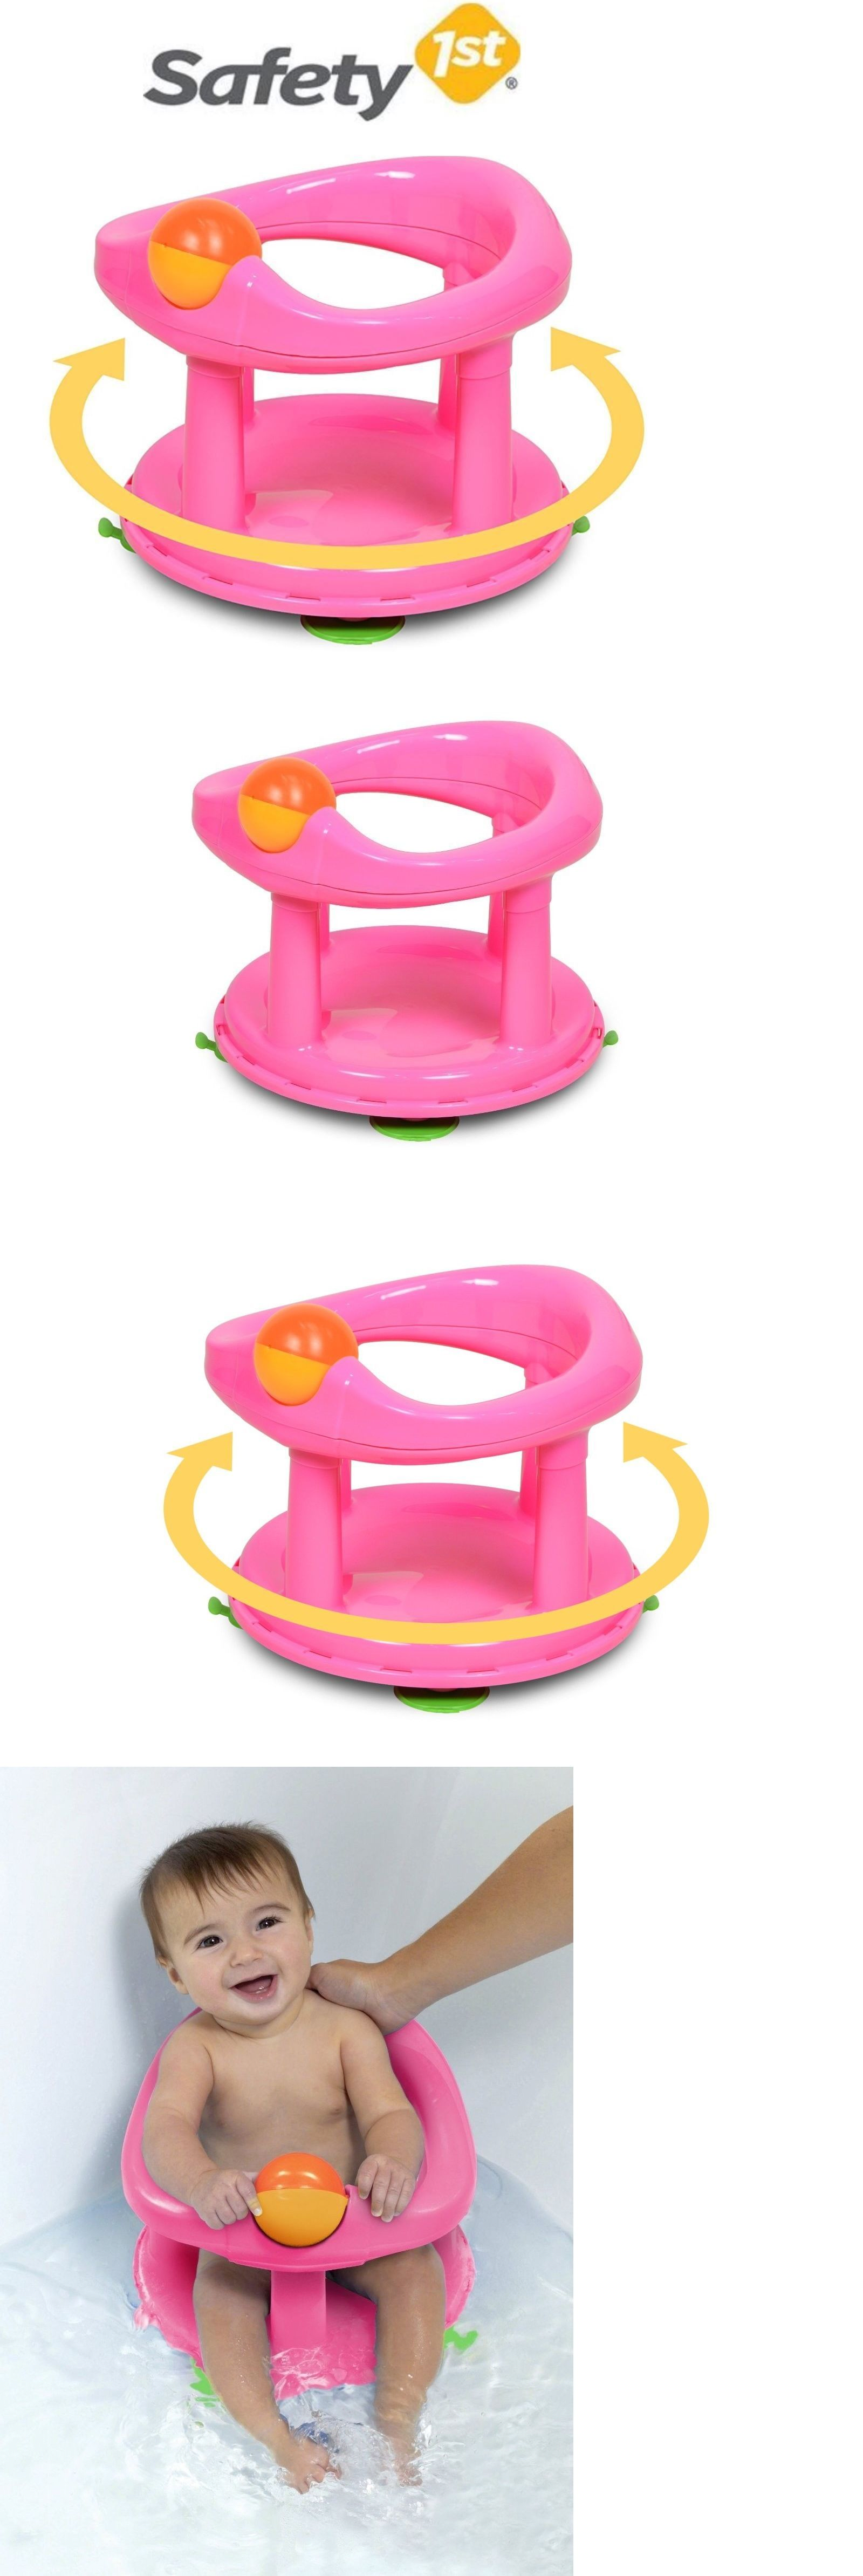 Bath Tub Seats and Rings 162024: Baby Bath Tub Ring Safety First 1St ...